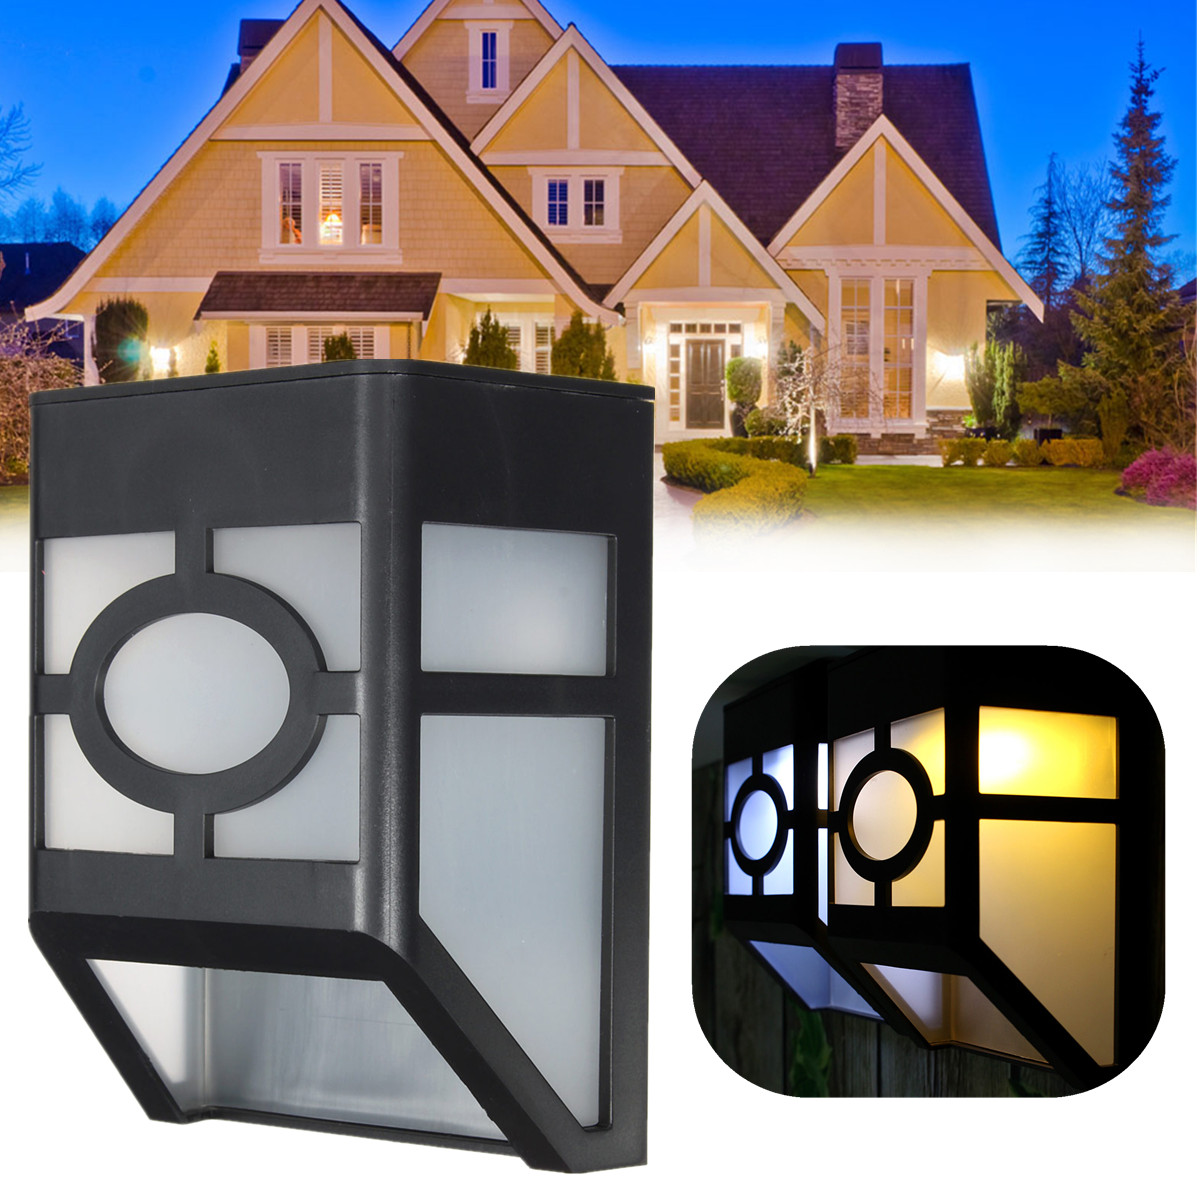 solaire 3 led lampe murale capture mouvement d tecteur maison jardin ext rieur ebay. Black Bedroom Furniture Sets. Home Design Ideas